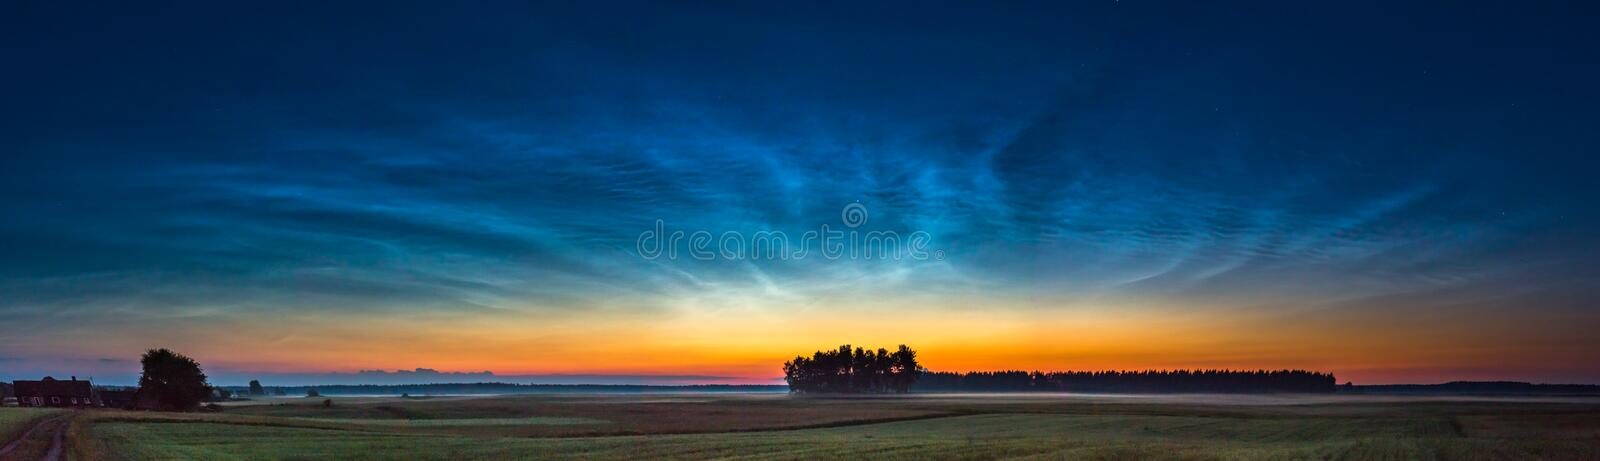 Night landscape with electric line and Noctilucent clouds stock images